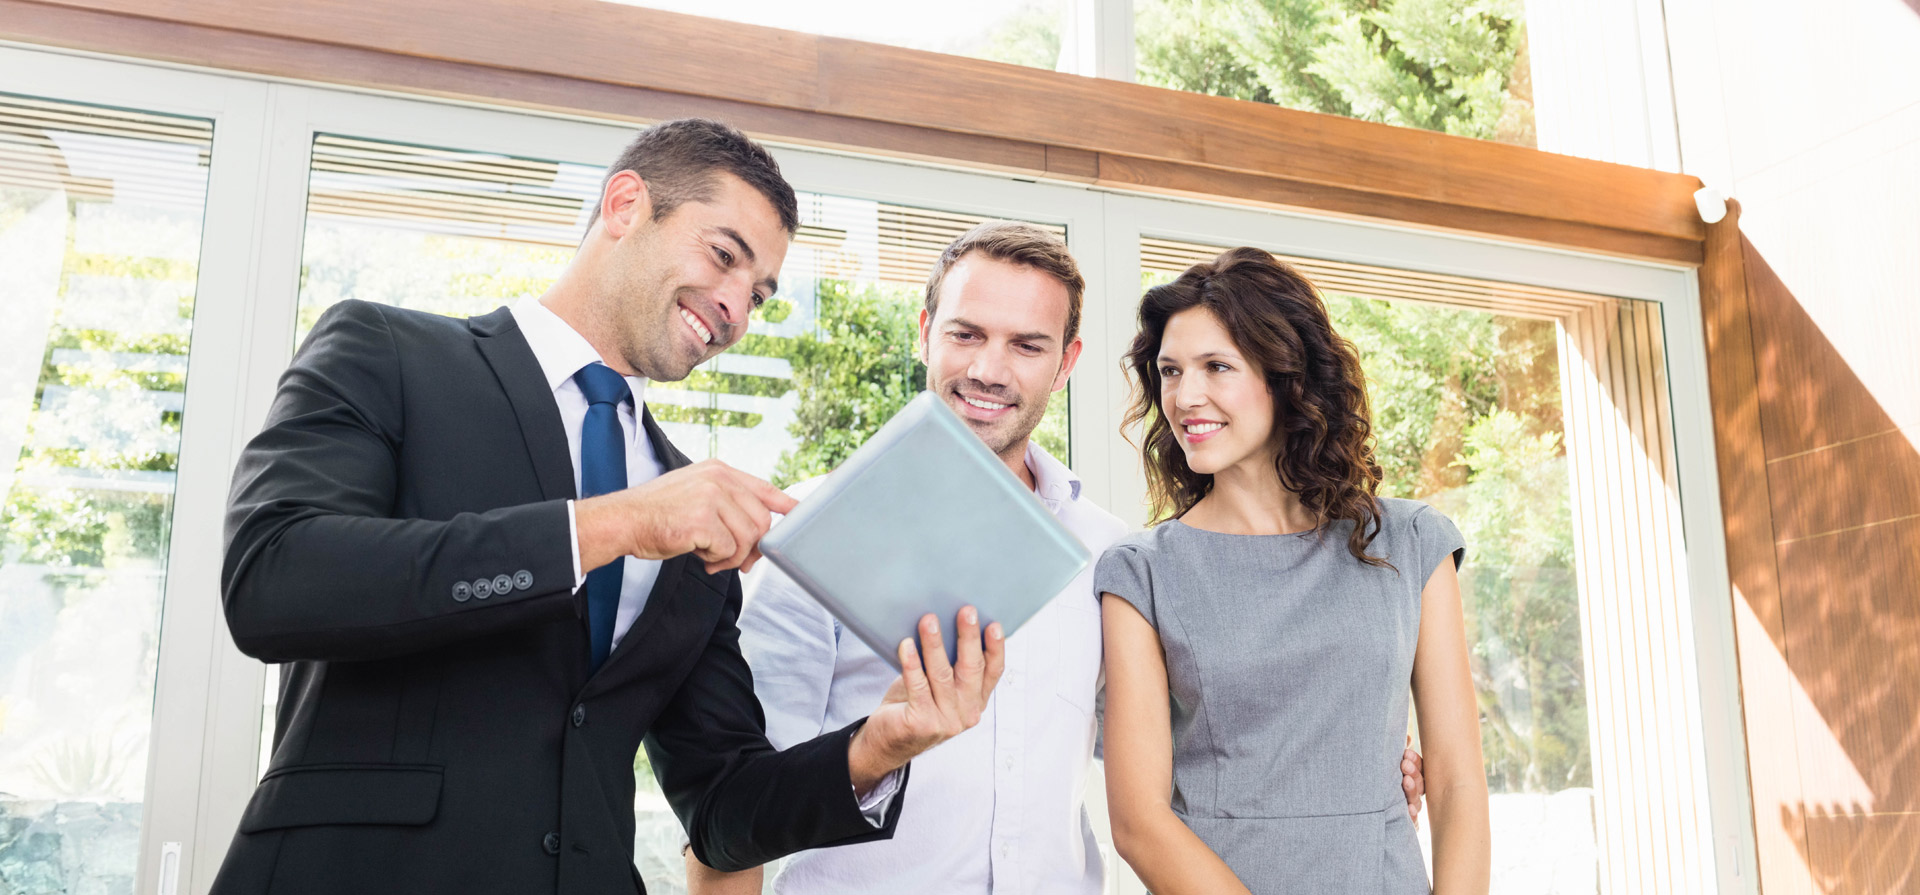 5 ways mortgage lenders can benefit from having a mobile app in their origination process